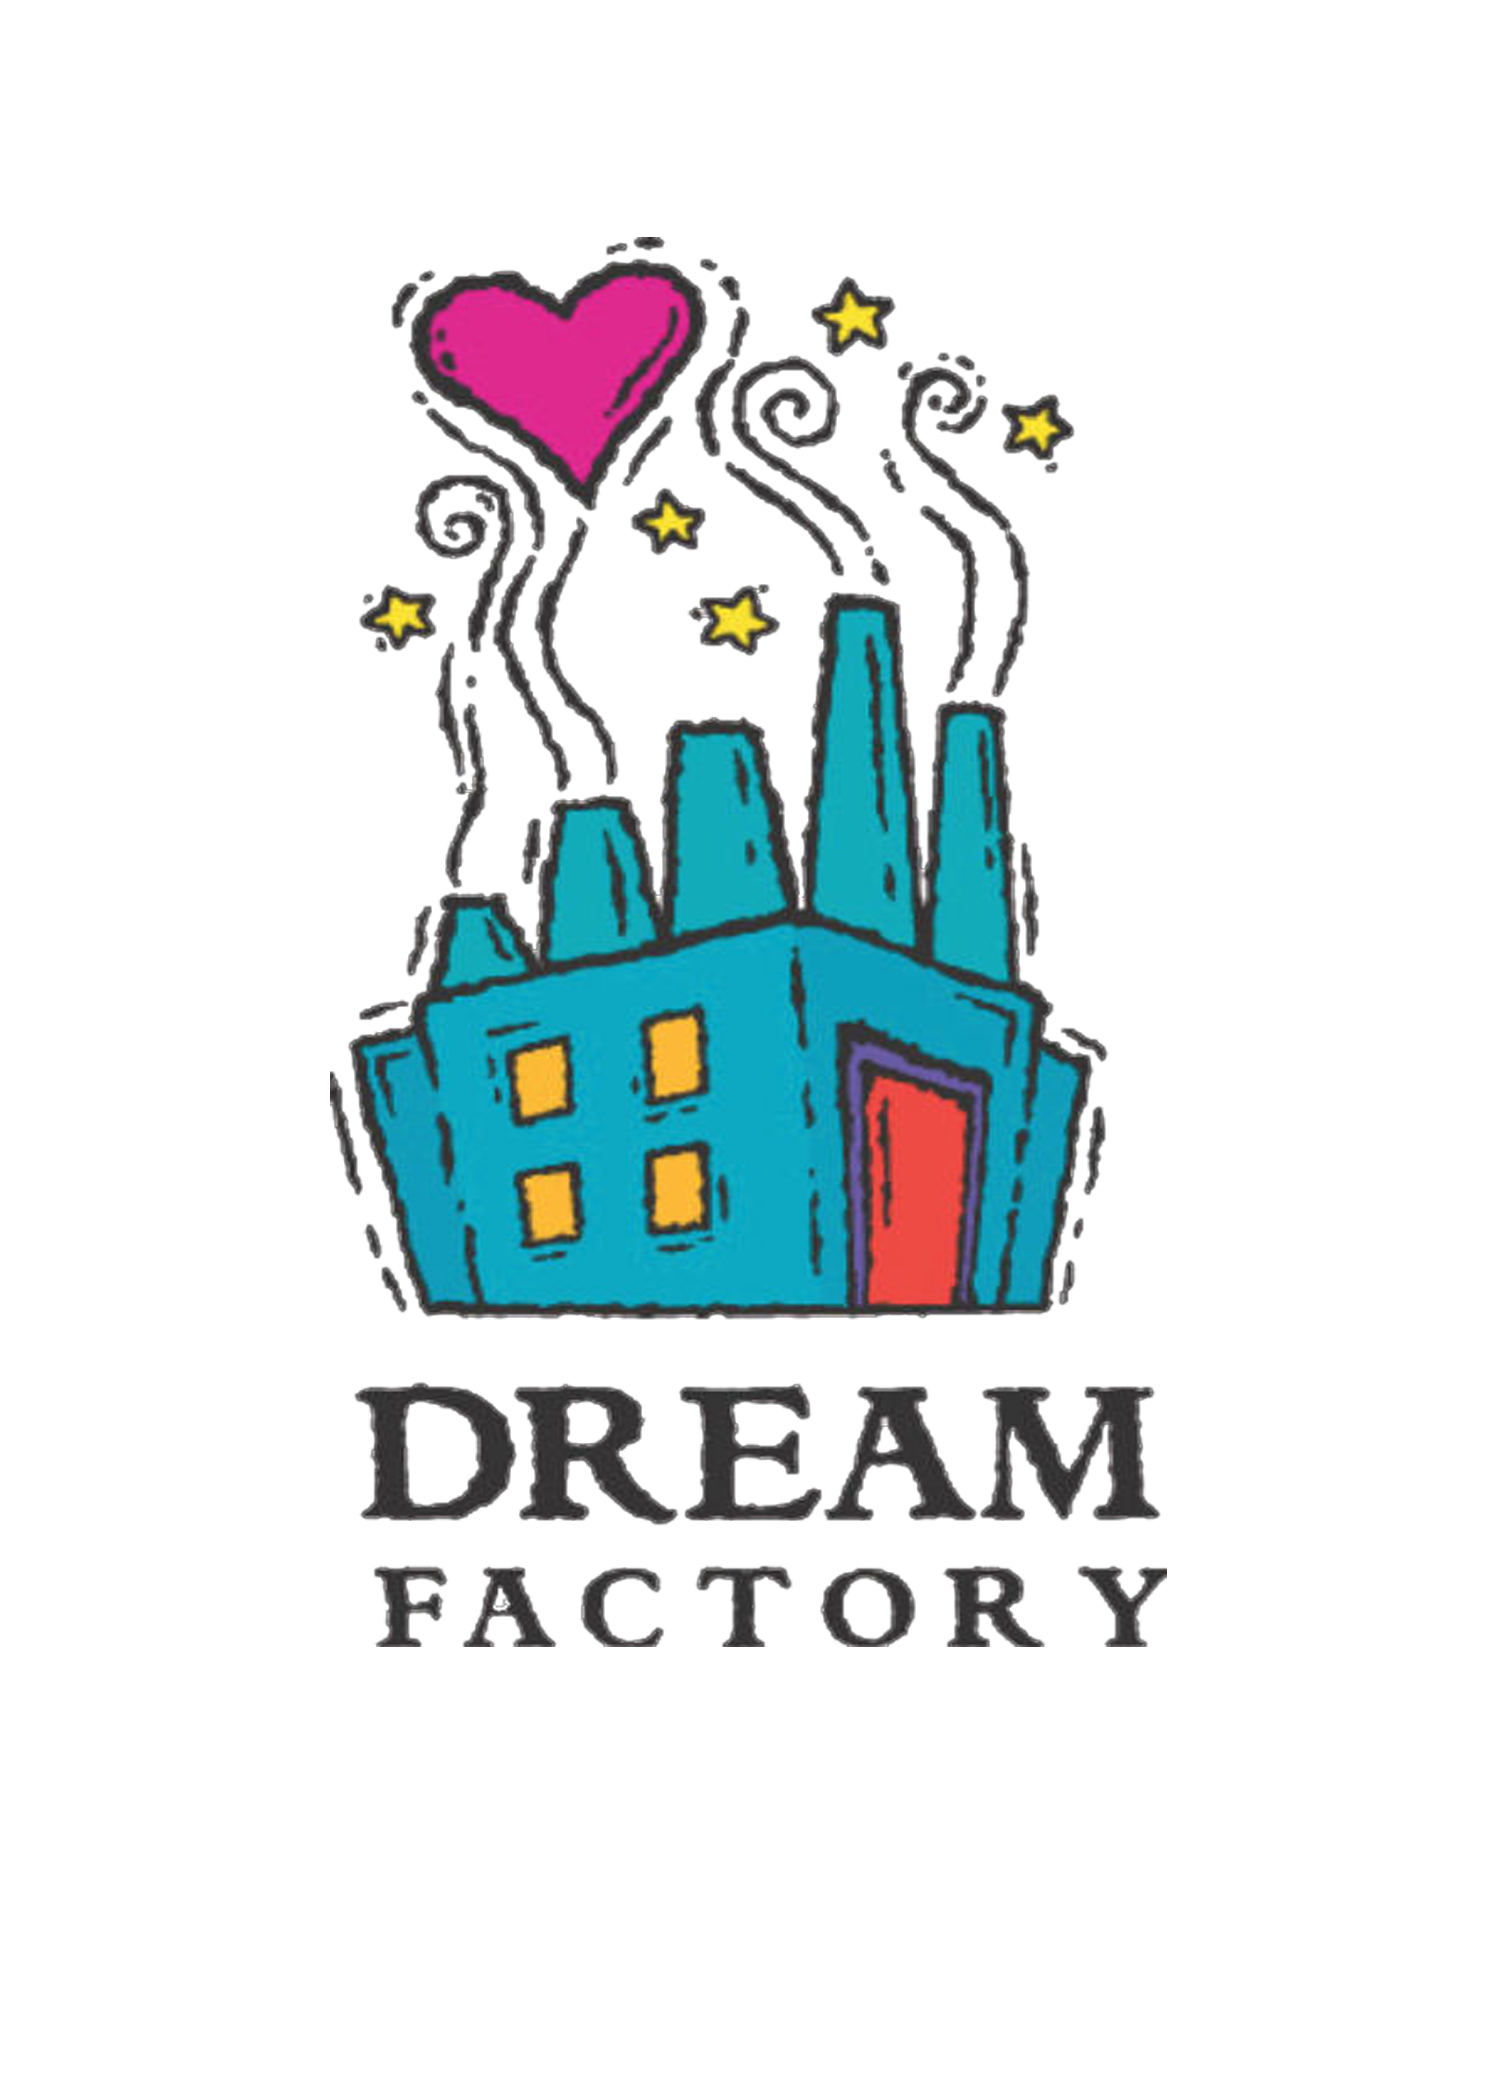 Transparent free on dumielauxepices. Dreaming clipart day dreaming